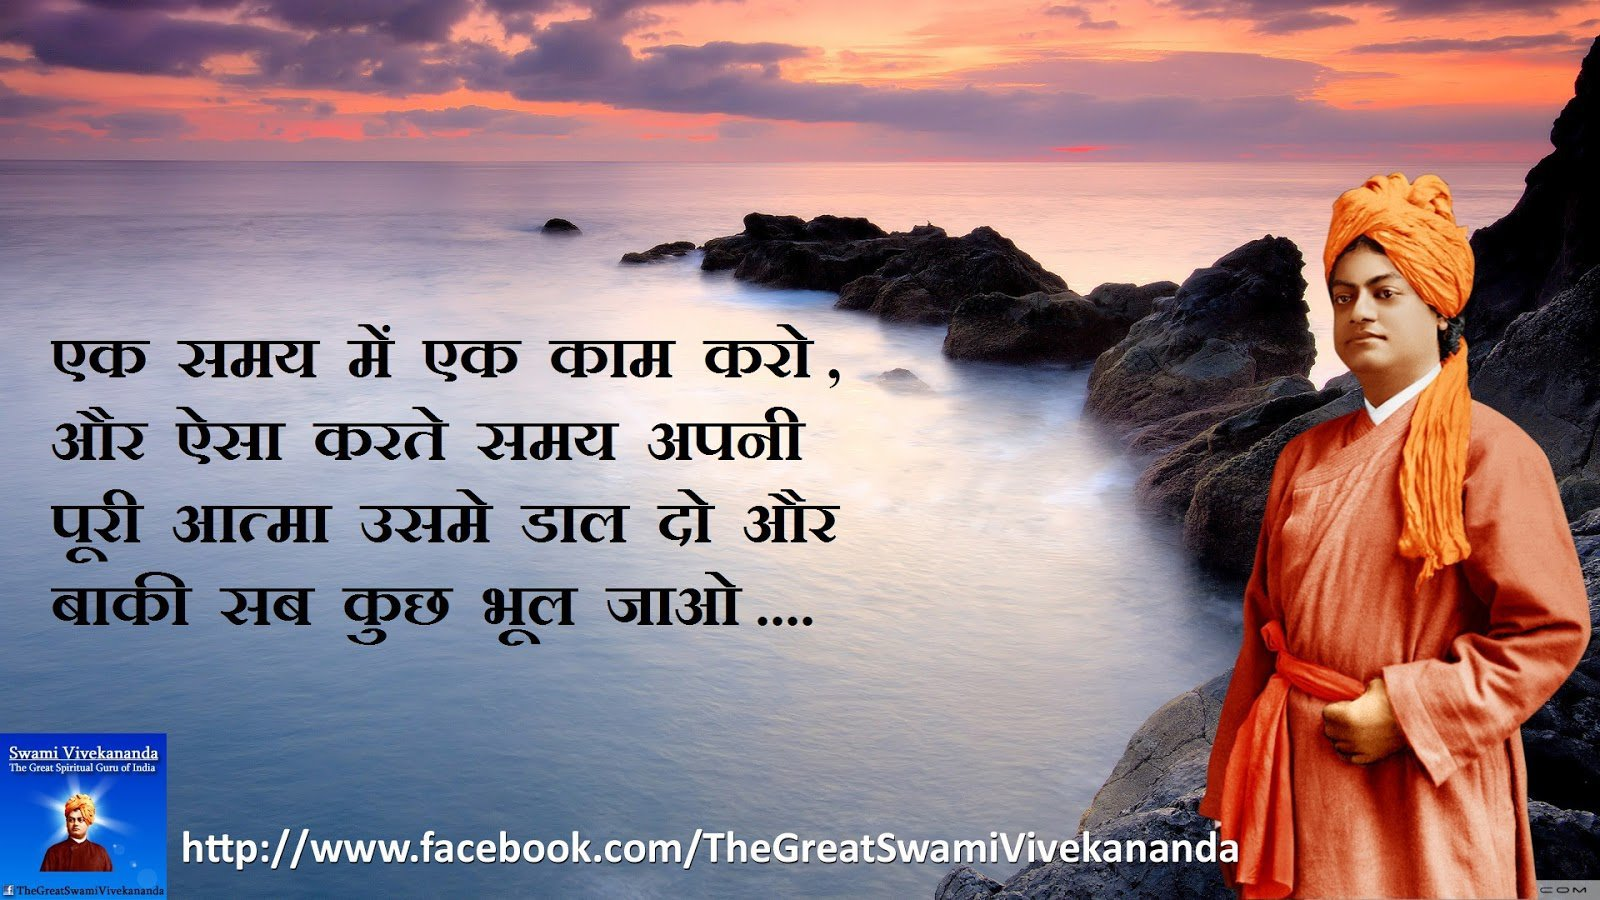 Swami Vivekananda Quotes Wallpapers HD Backgrounds Images Pics 1600x900